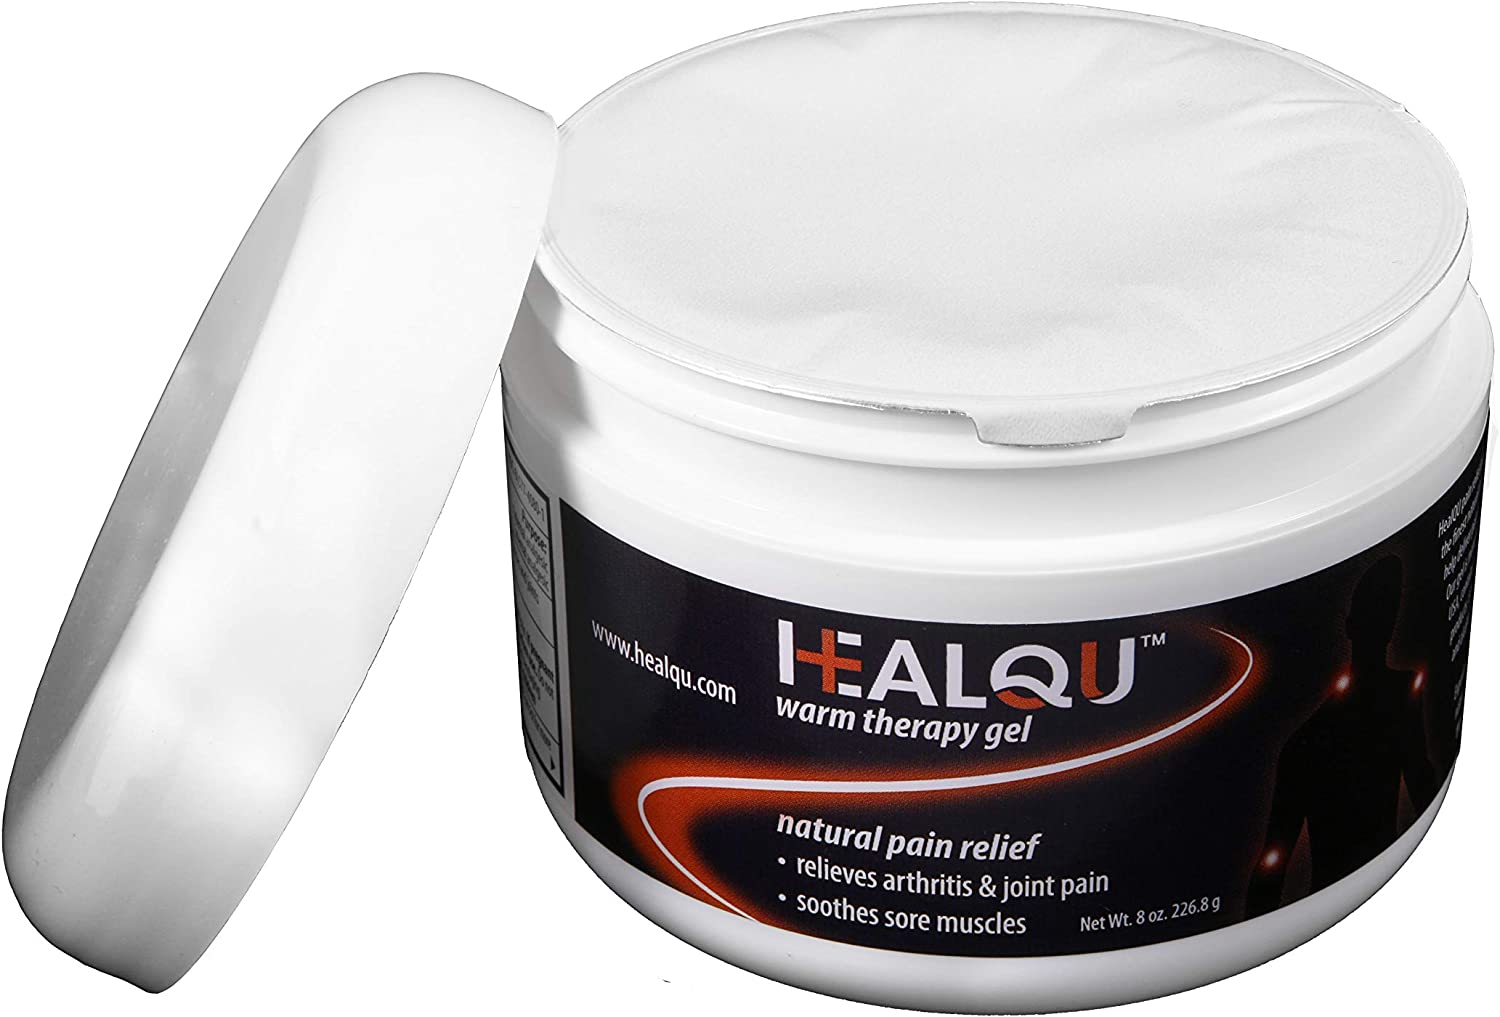 Pain Relief Gel by HealQu, 8oz Warm Therapy Natural Pain Relieving Gel for Knee, Joint & Back Pain, Long-Lasting Topical Pain Reliever.